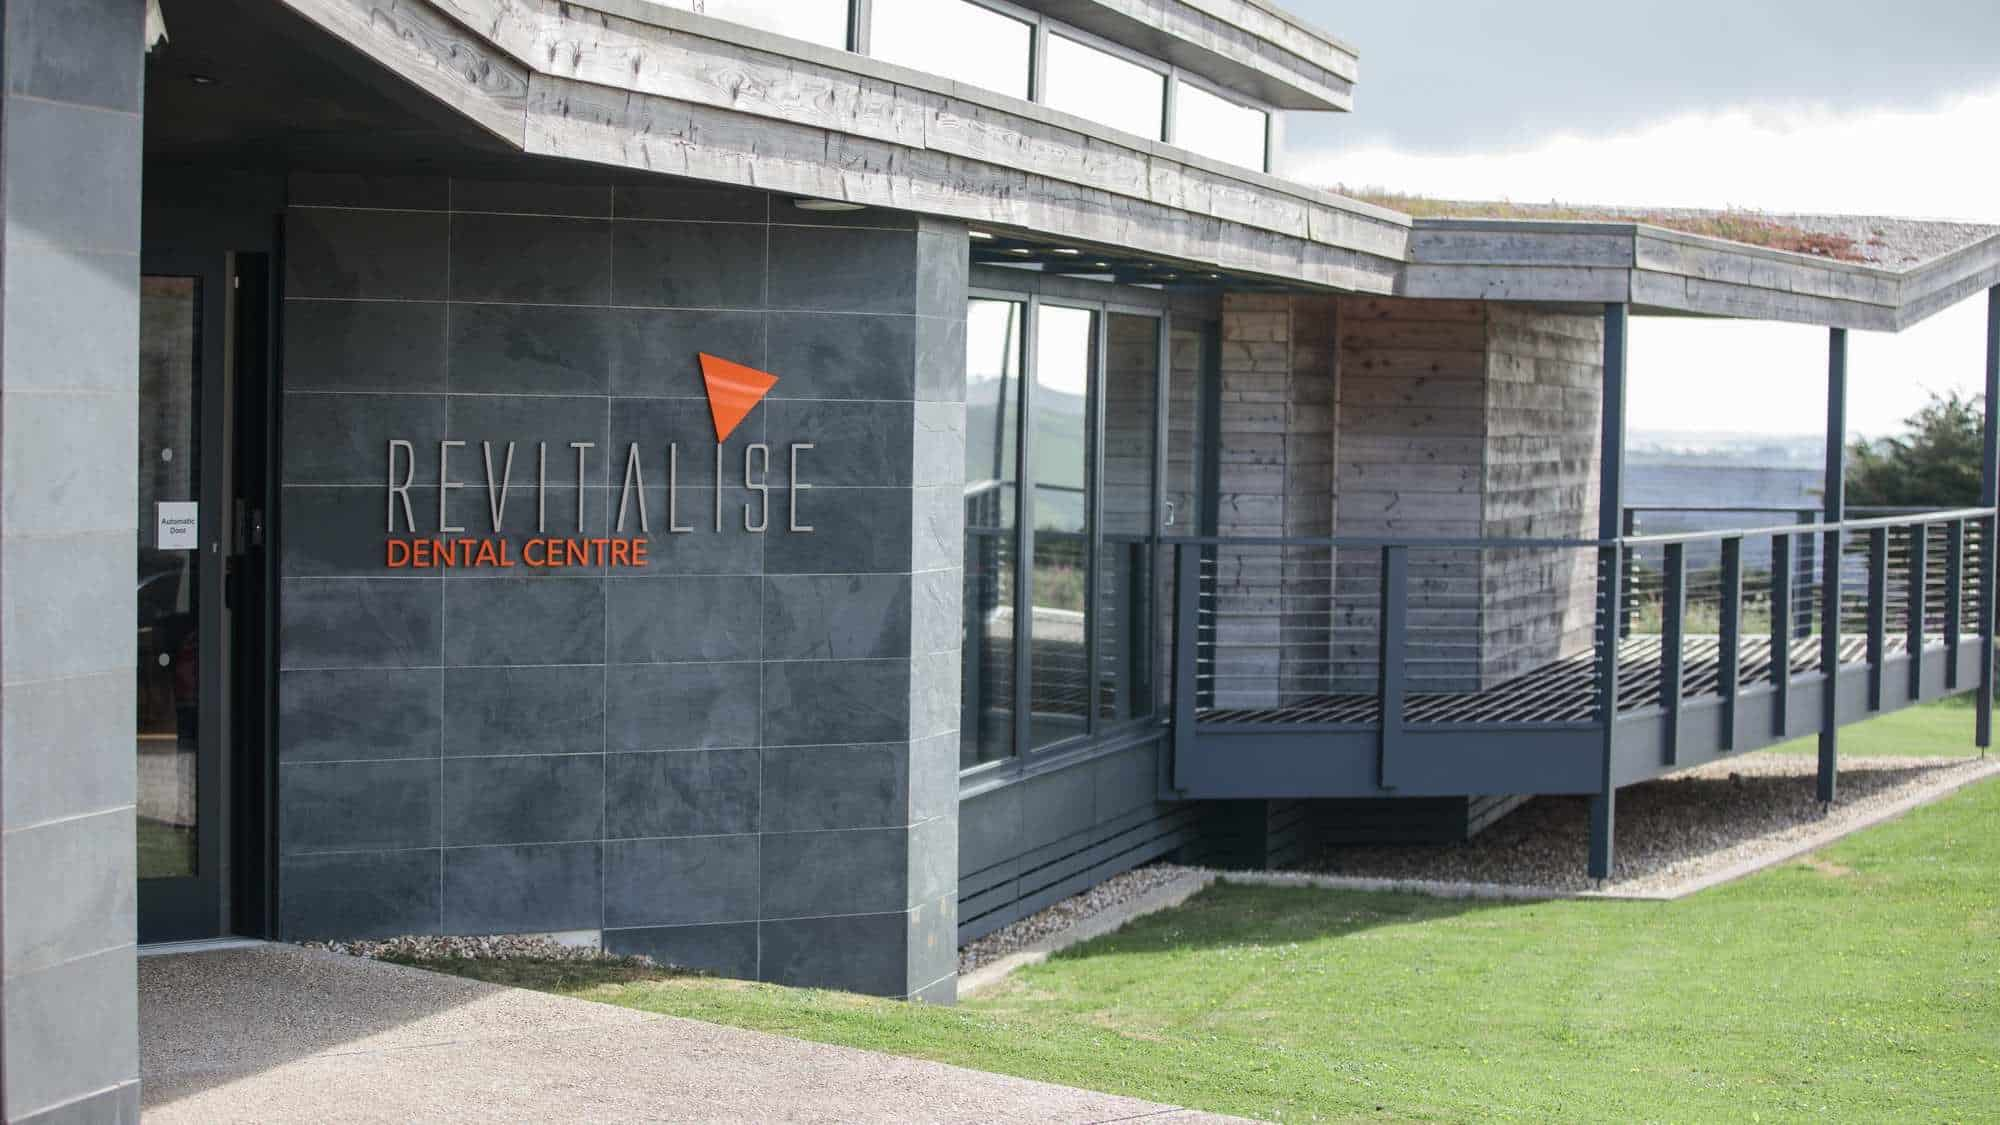 Revitalise Dental Centre